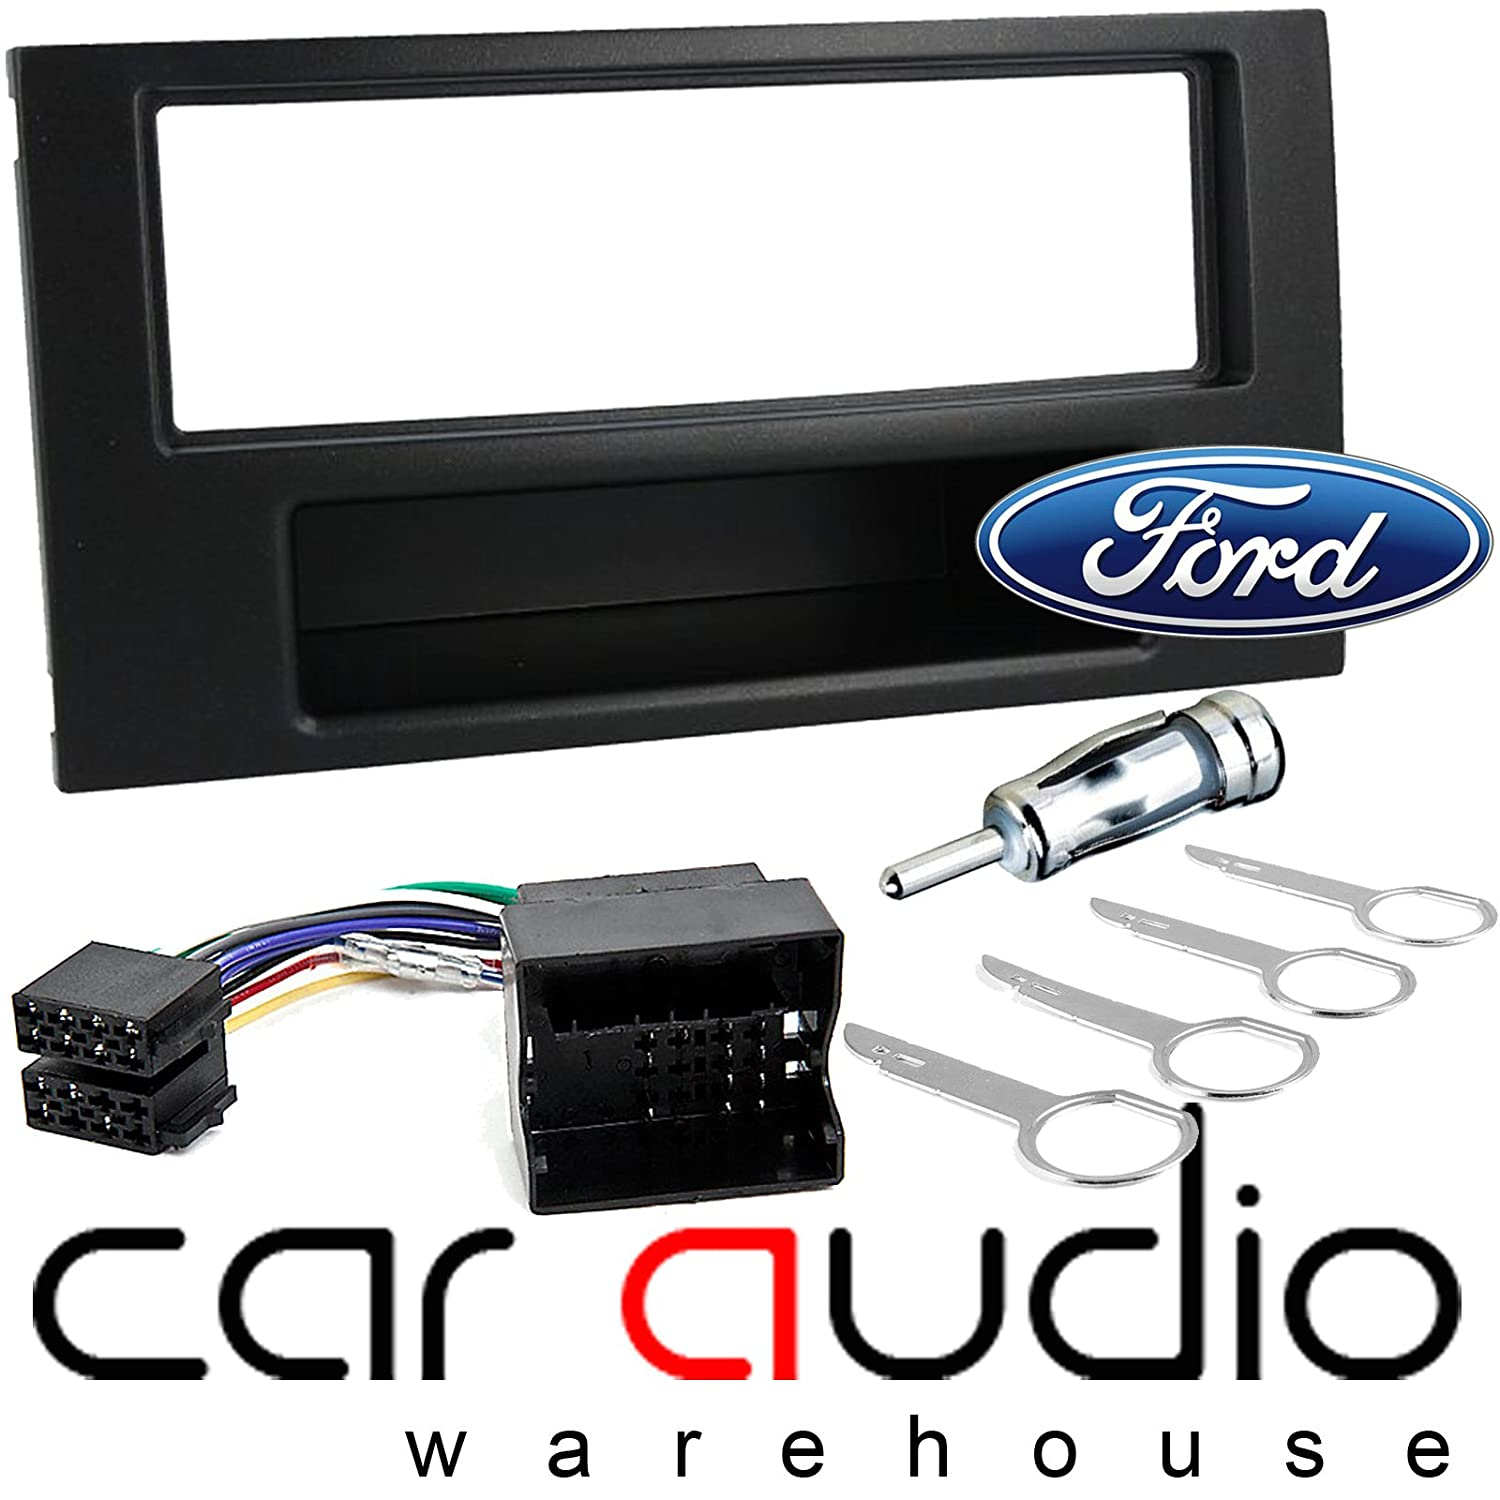 Ford C Max Connect Fiesta Focus Fusion Transit Car Stereo Radio 2005 Wire Harness Facia Fascia Panel Wiring Fitting Kit Electronics